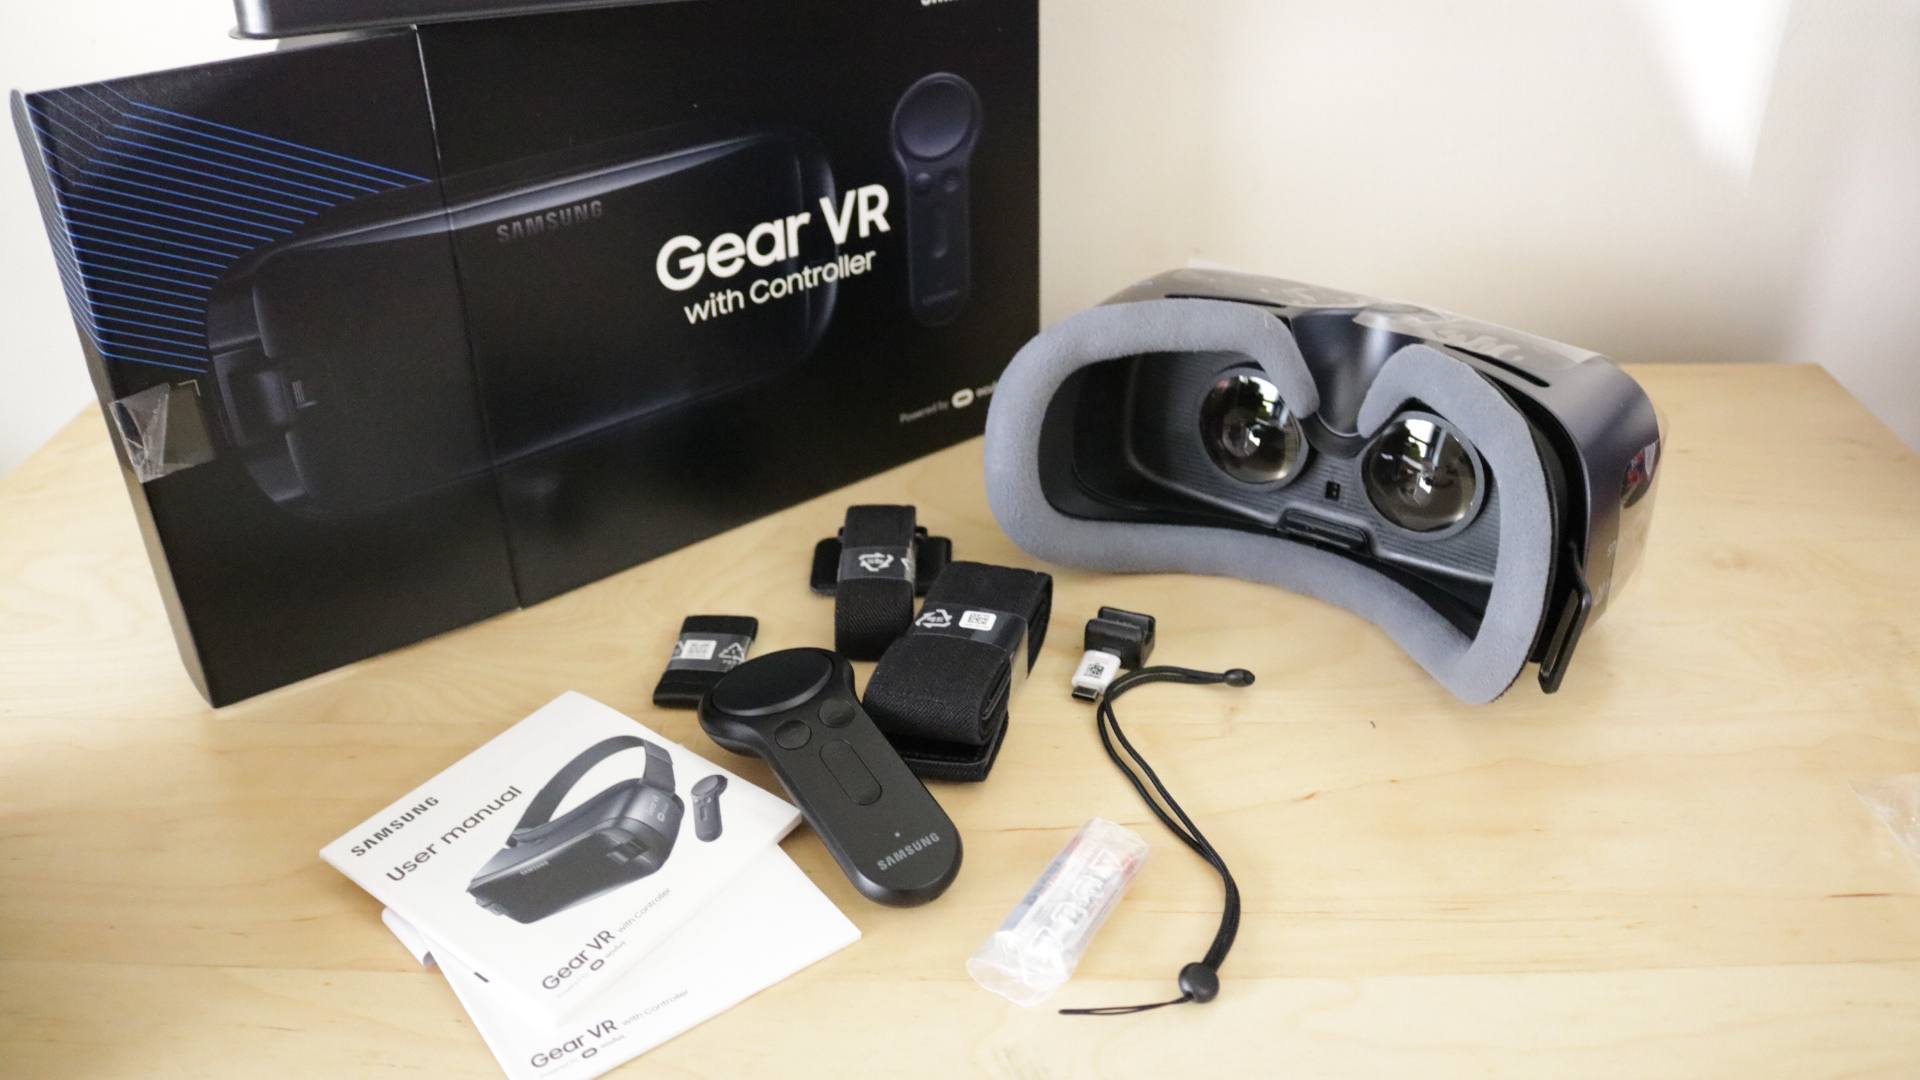 Samsung Gear VR (2018) Review – Should You Buy It? | Girl On The